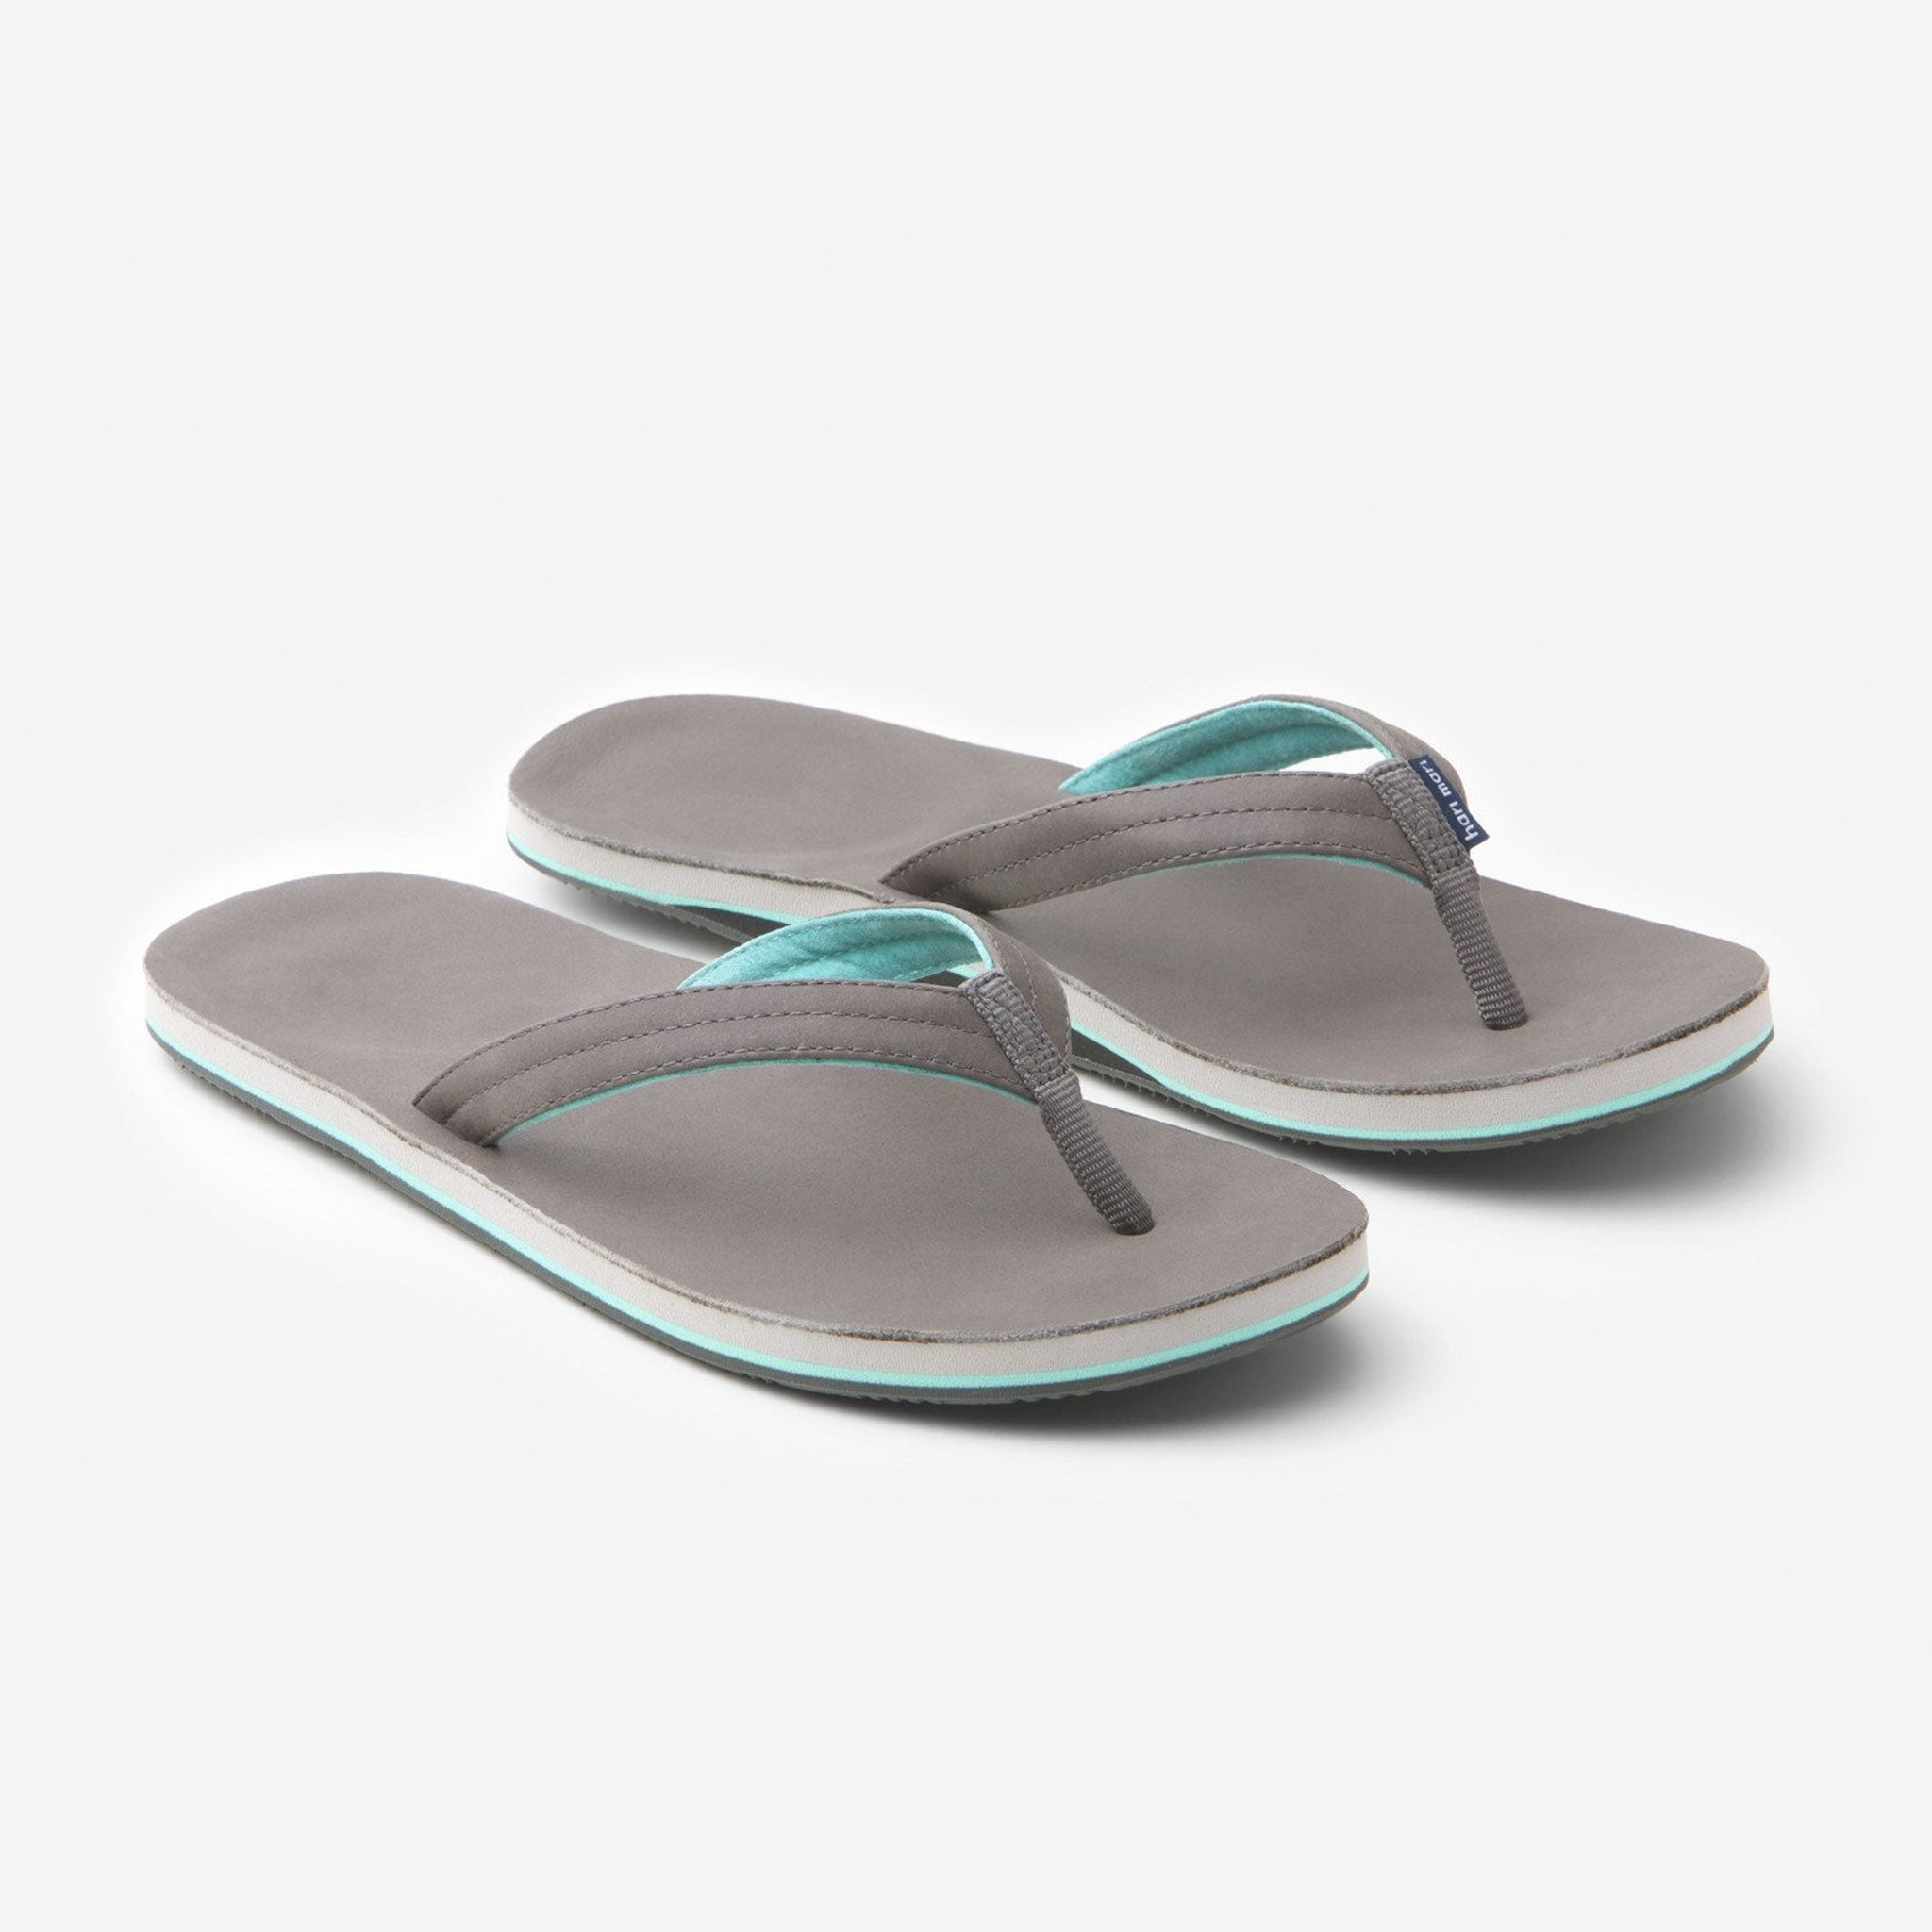 Lakes - Women's - Dark Gray/Mint - 45 Degree View